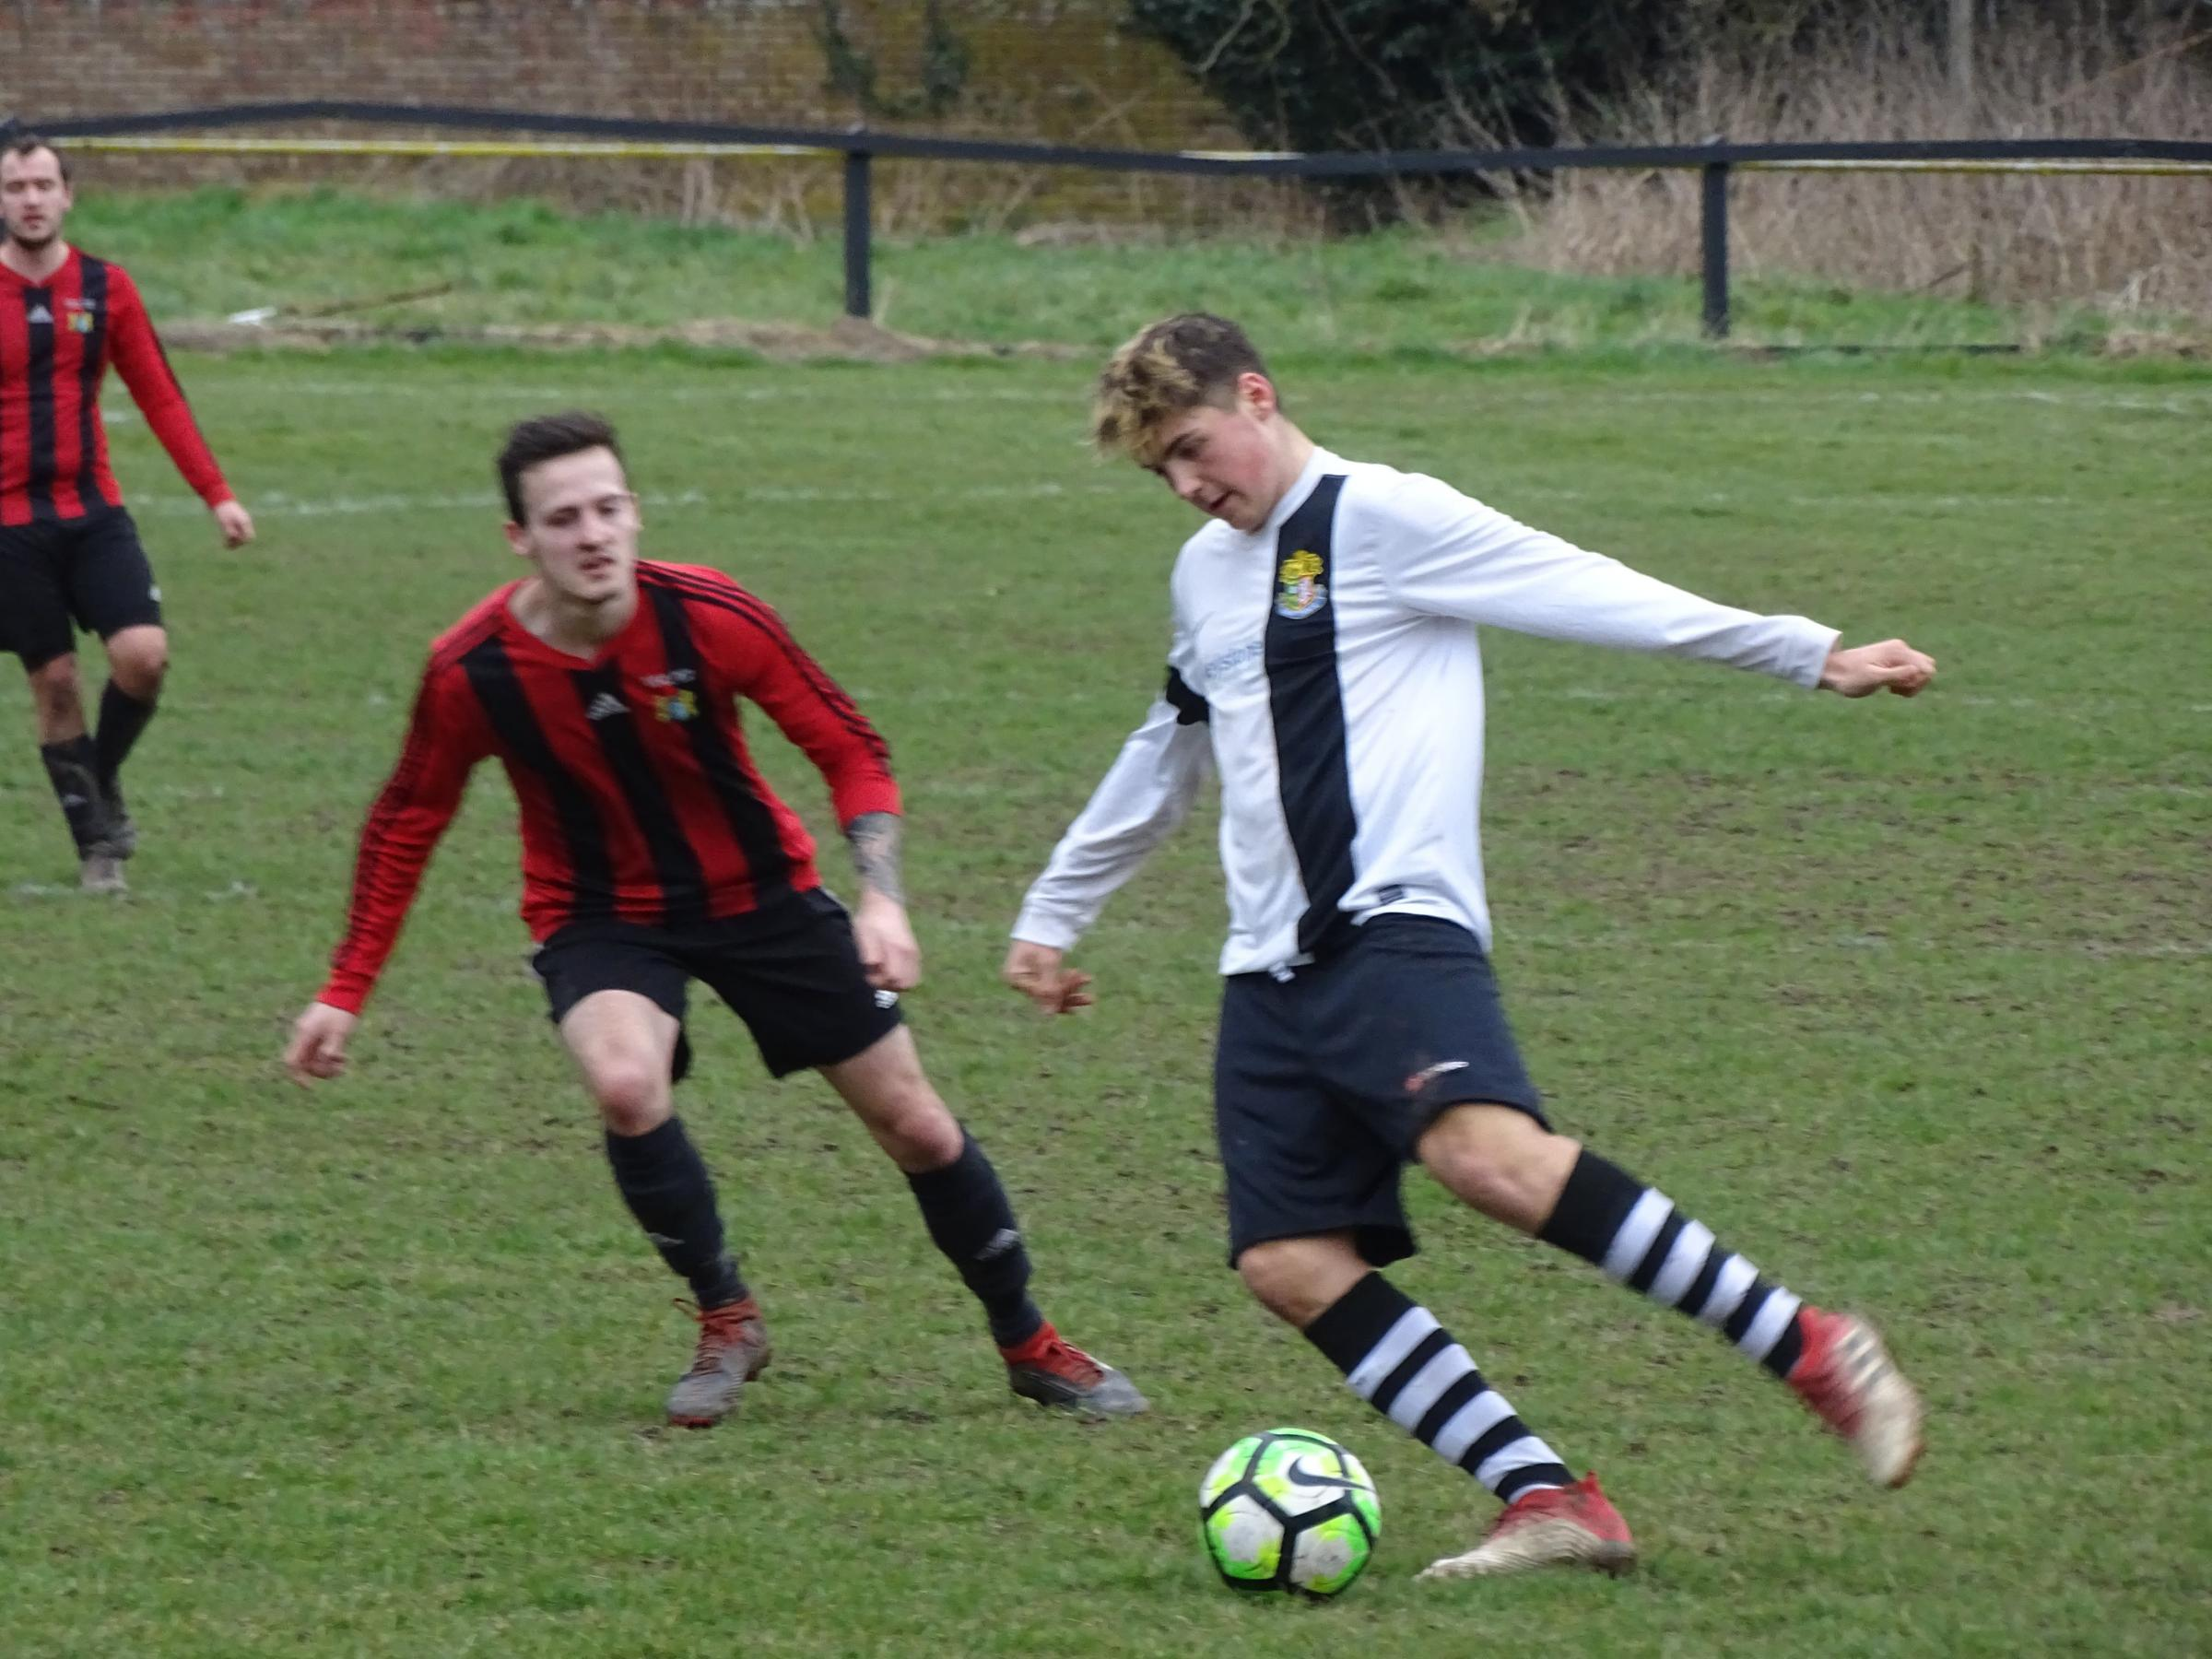 Ben Febery in action during Ledbury Town's 3-1 defeat to Clee Hill United at New Street. Picture: CHRIS PONTER